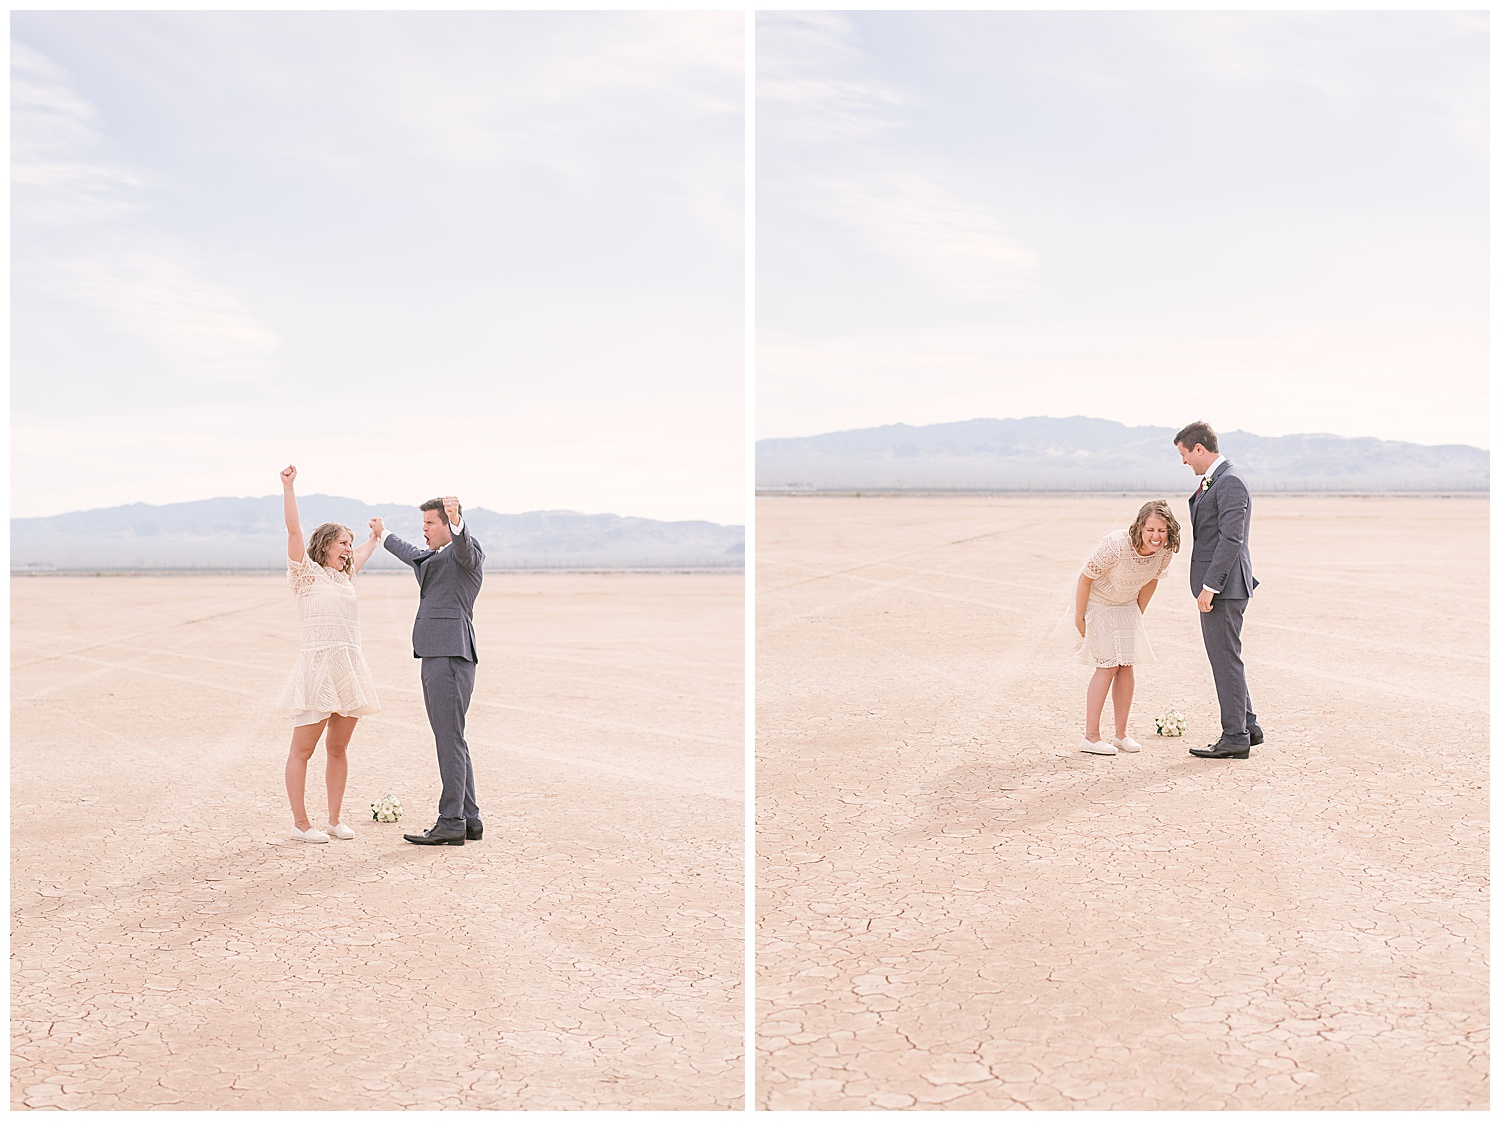 dry-lake-bed-las-vegas-elopement-photographer-07.jpg